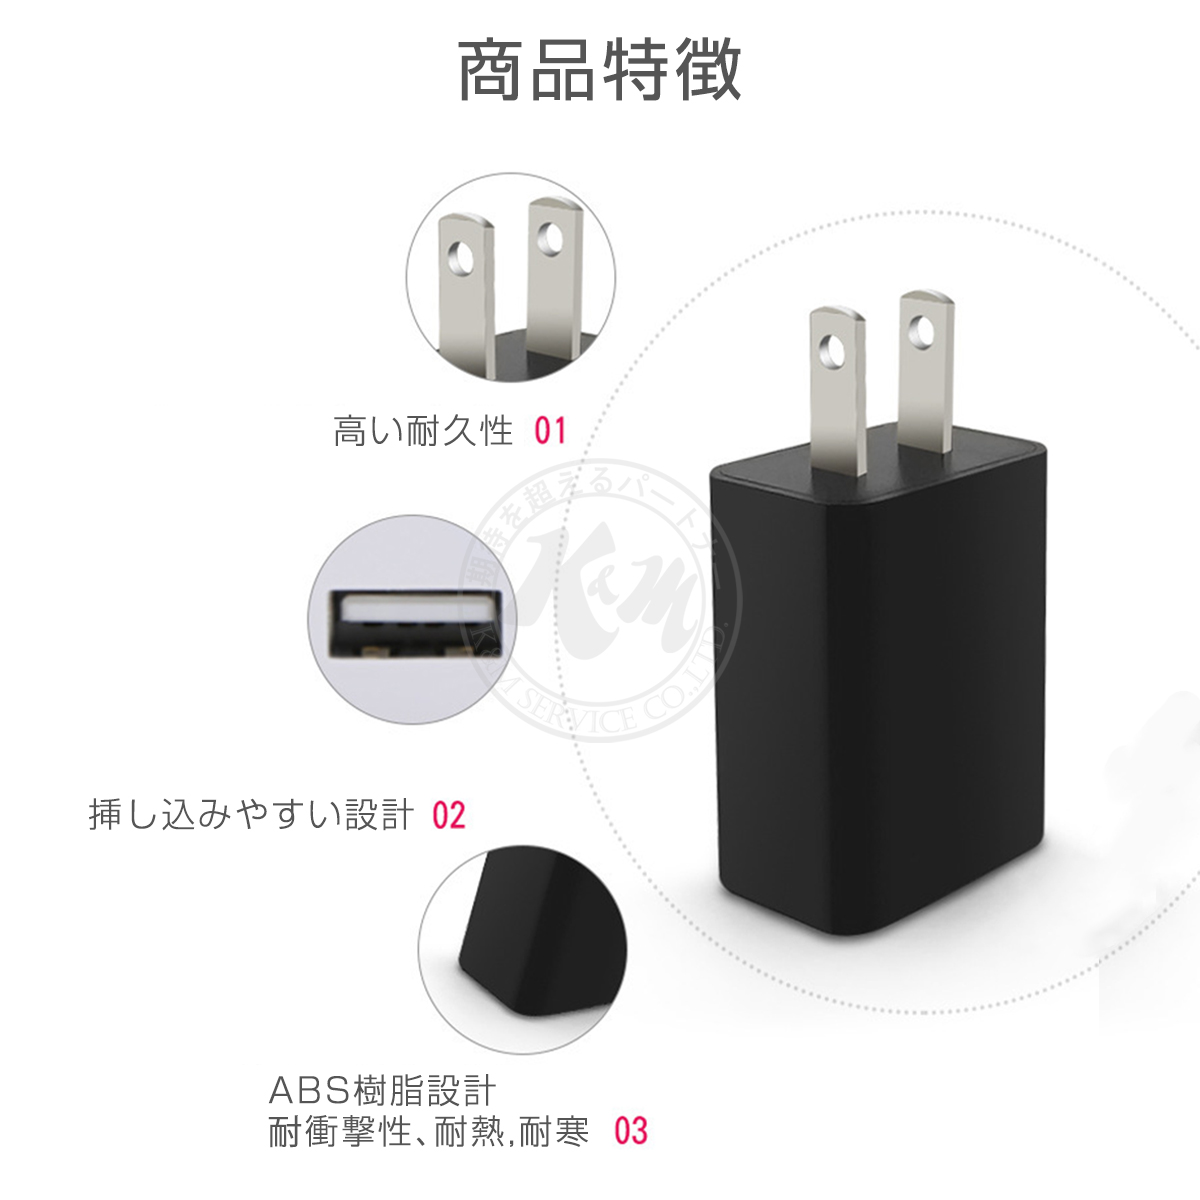 USB充電器 ACアダプター 2A 急速充電 スマホ充電器 USB電源アダプター AC充電器 白 携帯 コンパクト iPhone&Android対応 iPhone Galaxy Xperia XS ゲーム機 防犯カメラ等対応 SDM便送料無料 1ヶ月保証 K&M